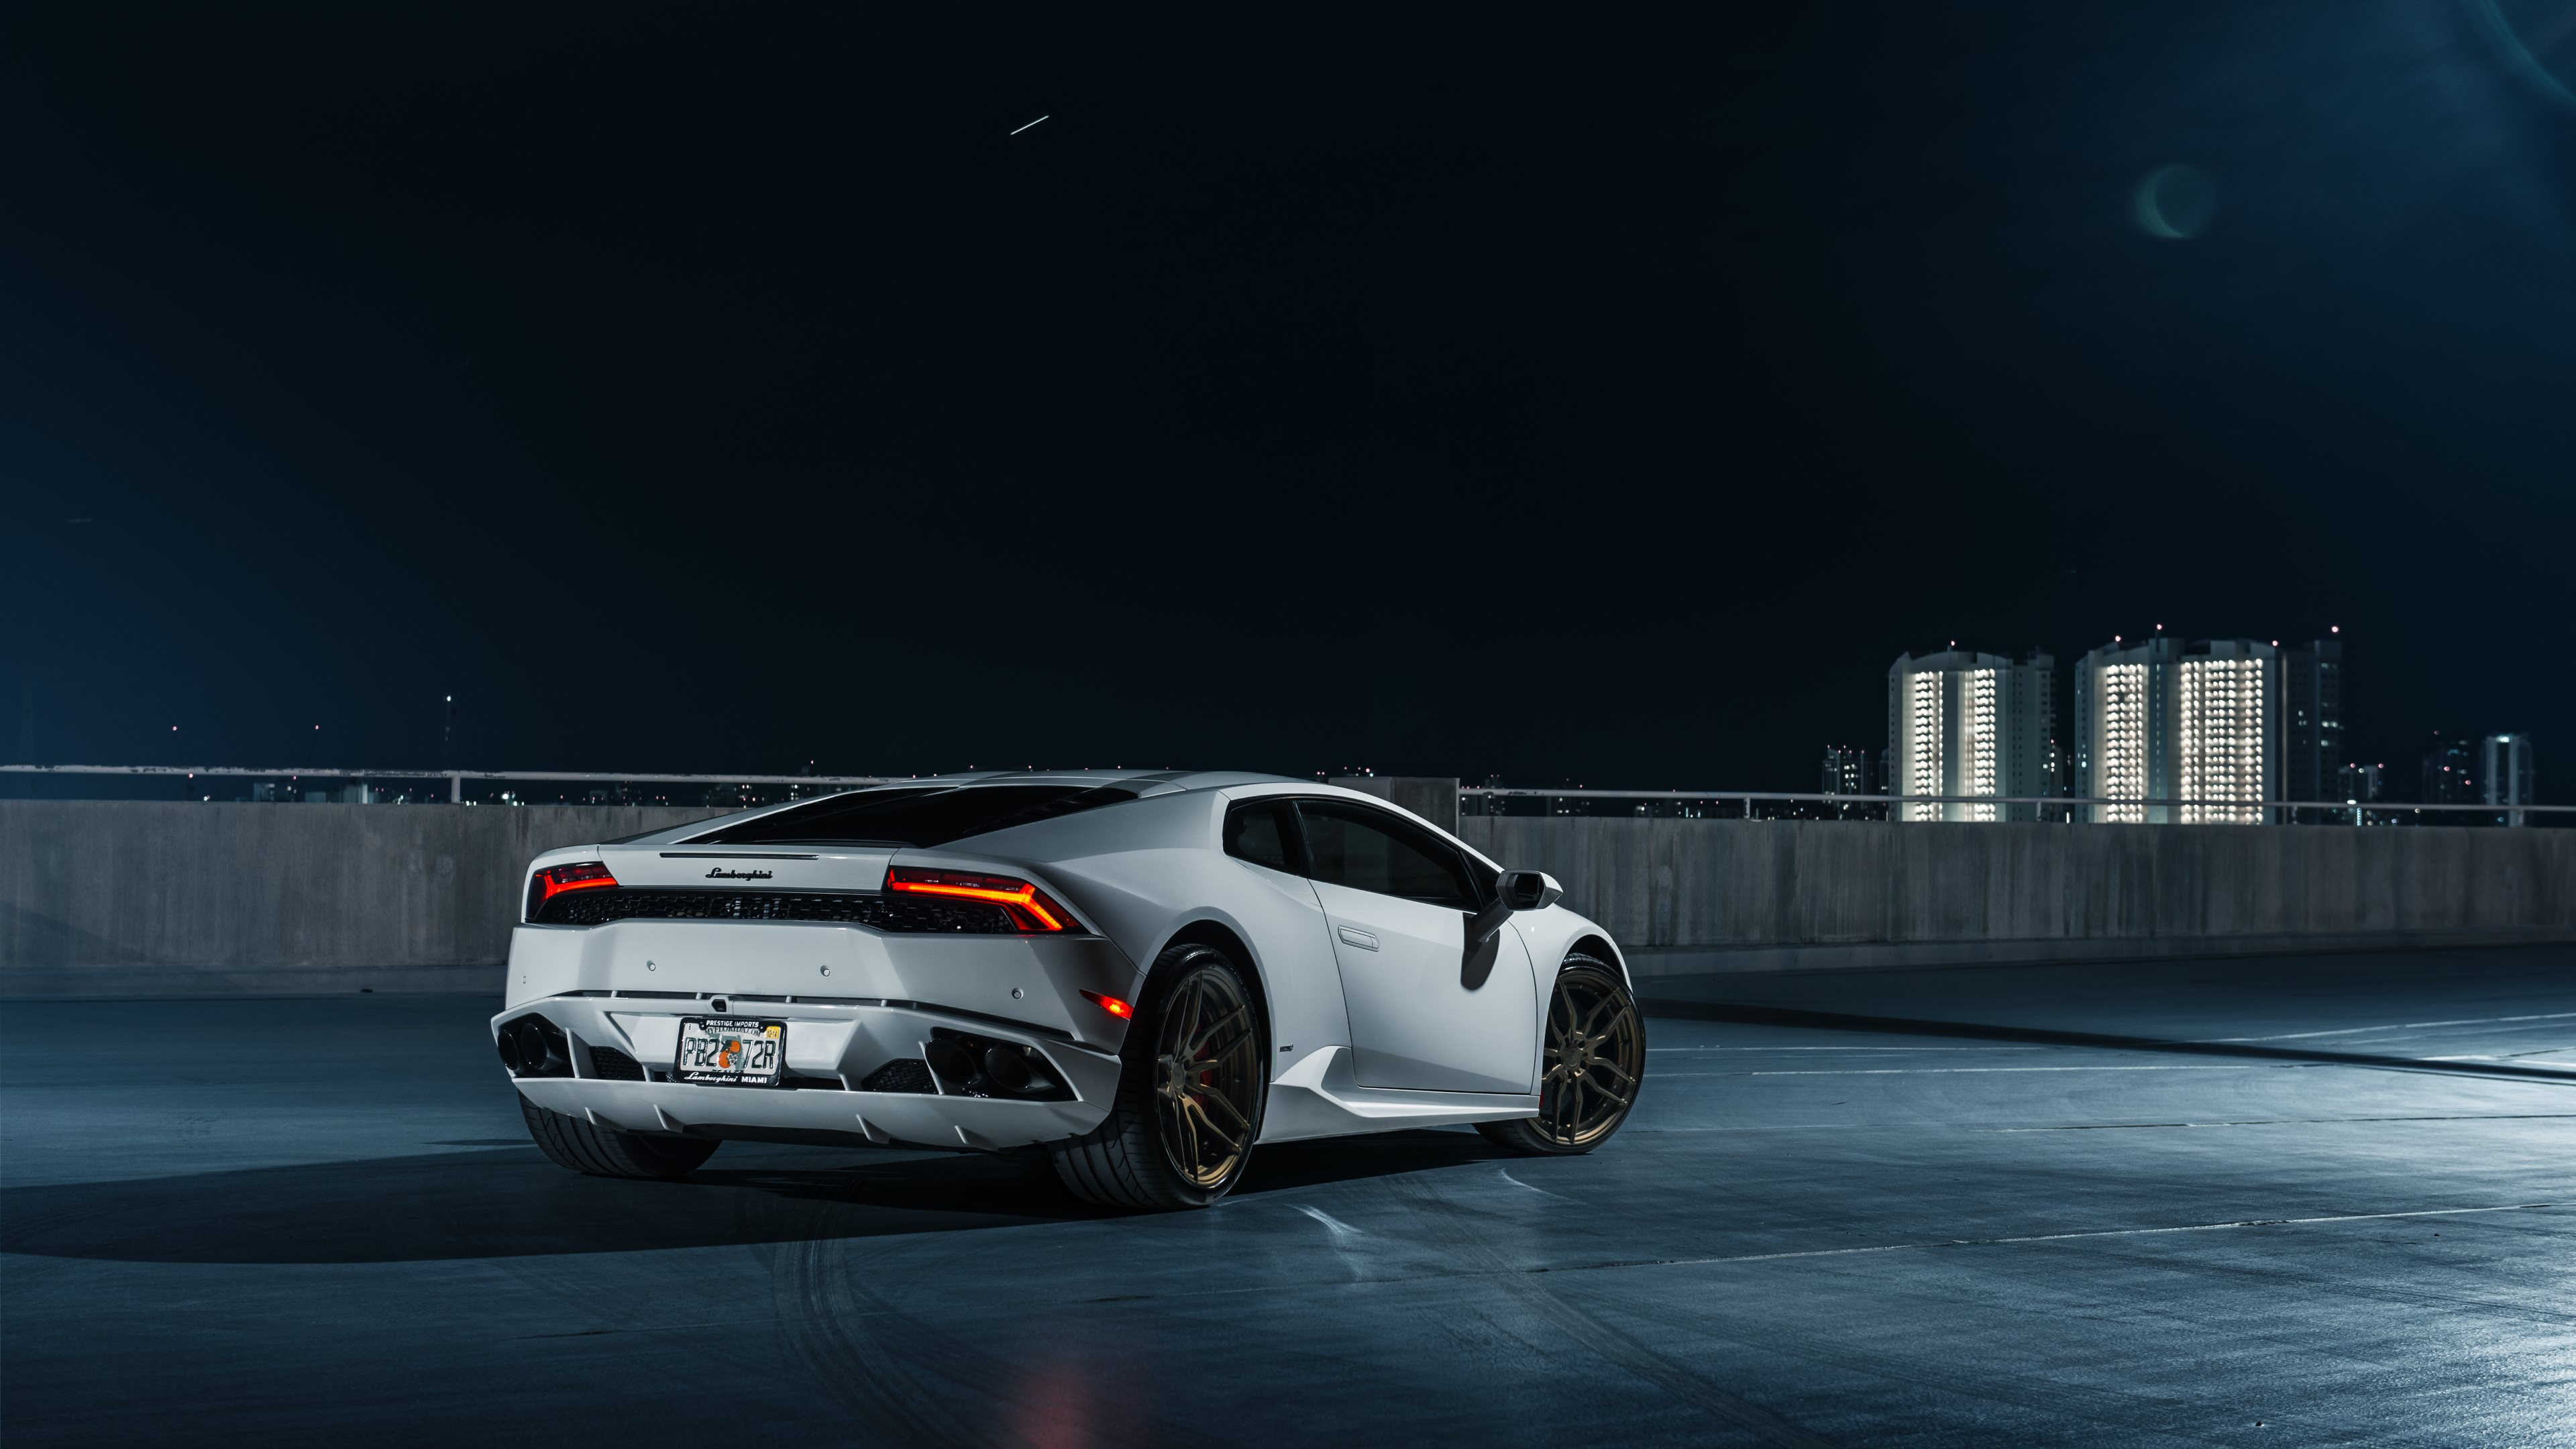 Lamborghini aventador wallpaper for macbook